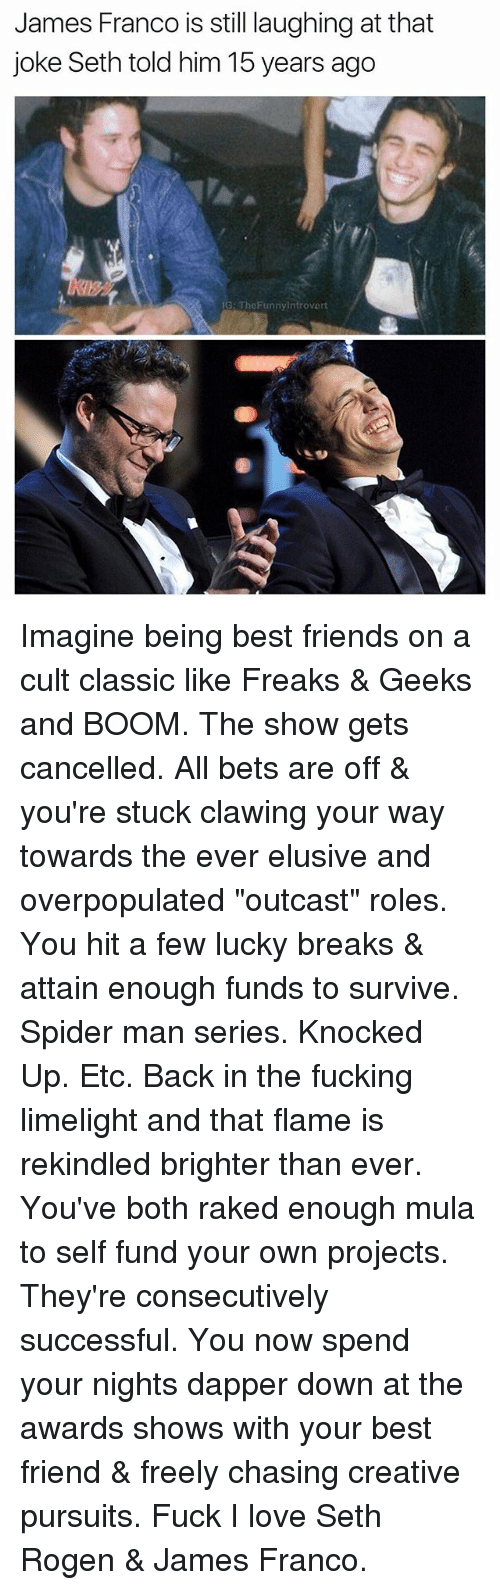 """Best Friend, Friends, and Fucking: James Franco is still laughing at that  joke Seth told him 15 years ago  G: TheFunnyintrovert  息ッ Imagine being best friends on a cult classic like Freaks & Geeks and BOOM. The show gets cancelled. All bets are off & you're stuck clawing your way towards the ever elusive and overpopulated """"outcast"""" roles. You hit a few lucky breaks & attain enough funds to survive. Spider man series. Knocked Up. Etc. Back in the fucking limelight and that flame is rekindled brighter than ever. You've both raked enough mula to self fund your own projects. They're consecutively successful. You now spend your nights dapper down at the awards shows with your best friend & freely chasing creative pursuits. Fuck I love Seth Rogen & James Franco."""